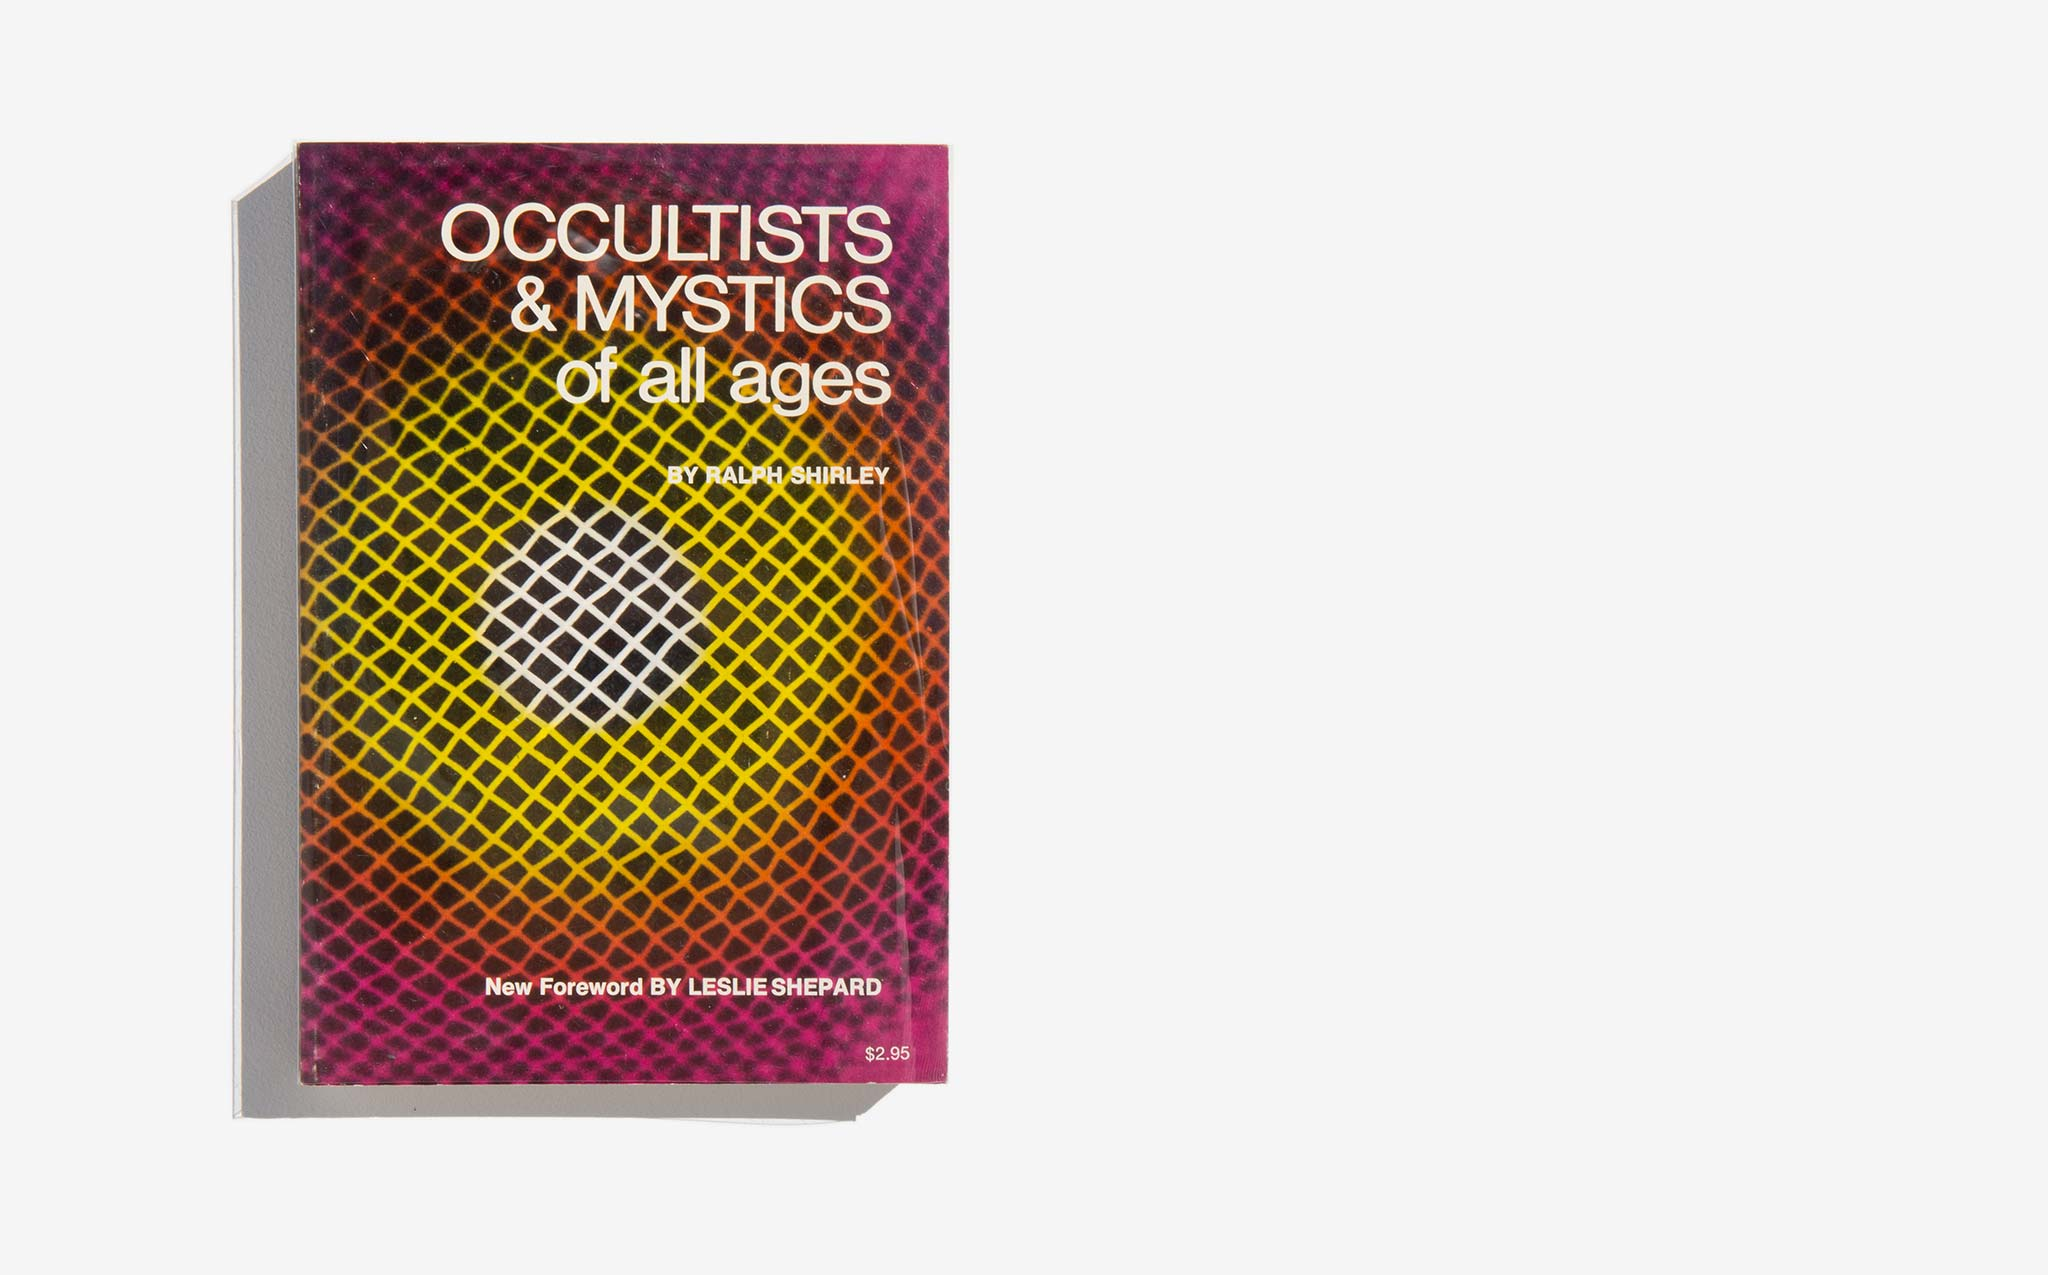 Occultists & Mystics of all Ages - Ralph Shirley